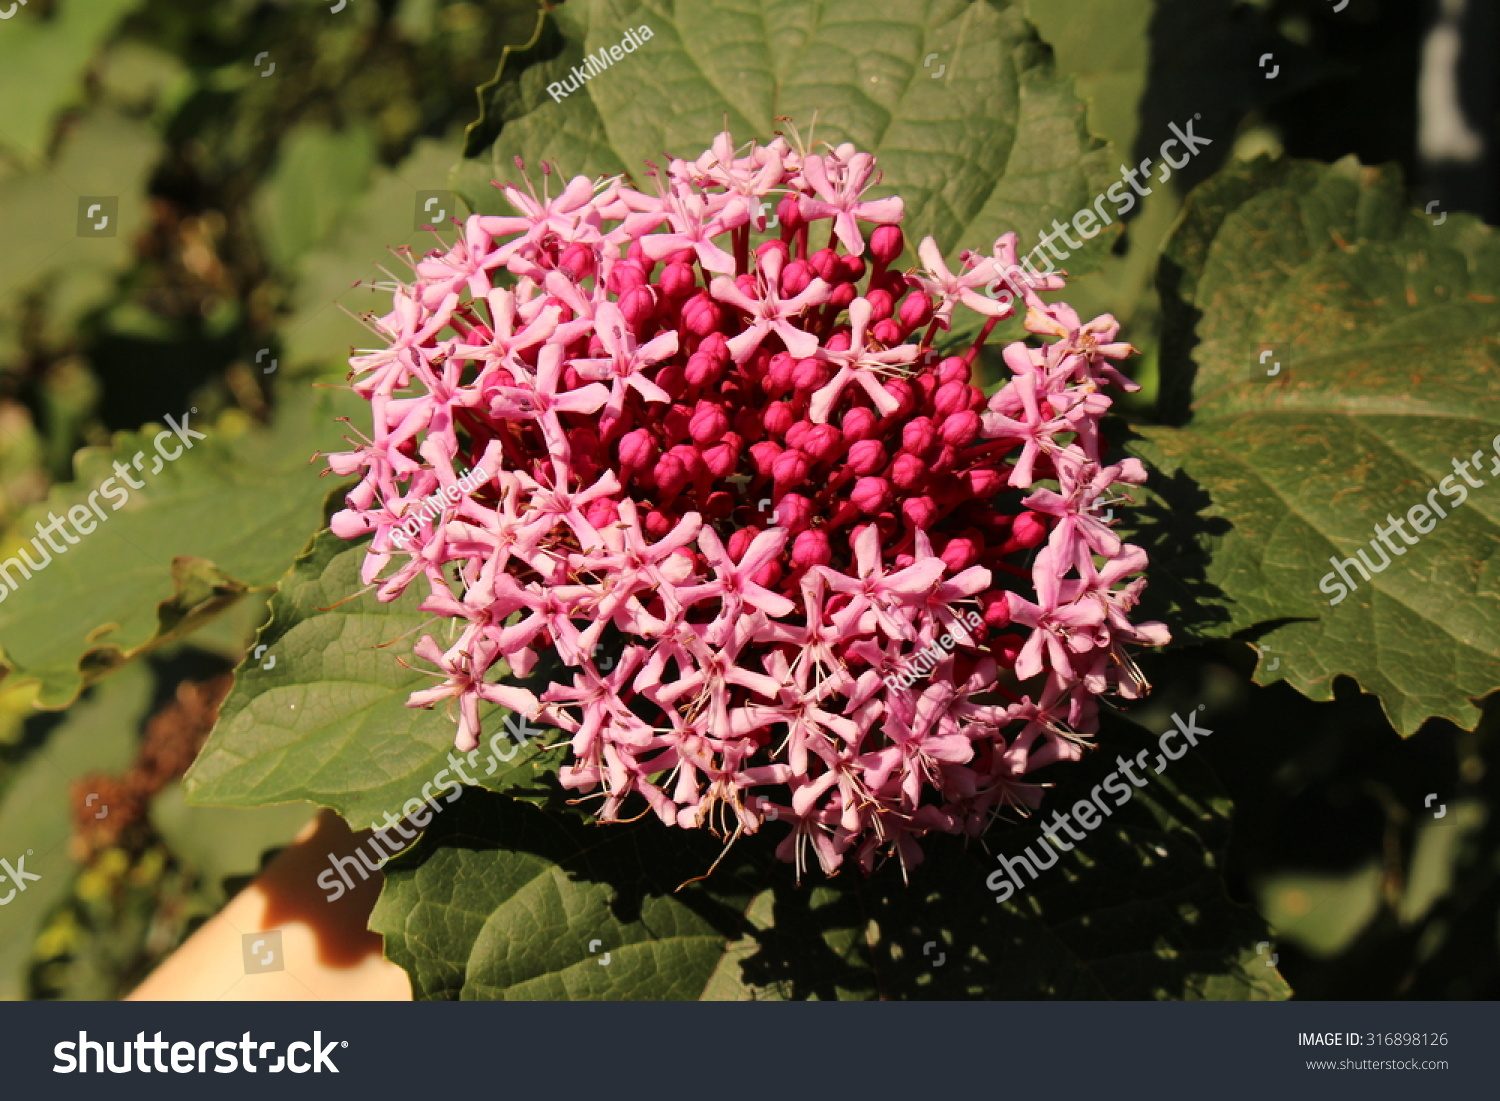 Rose Glory Bower Flowers Buds Or Stock Photo & Image (Royalty-Free ...